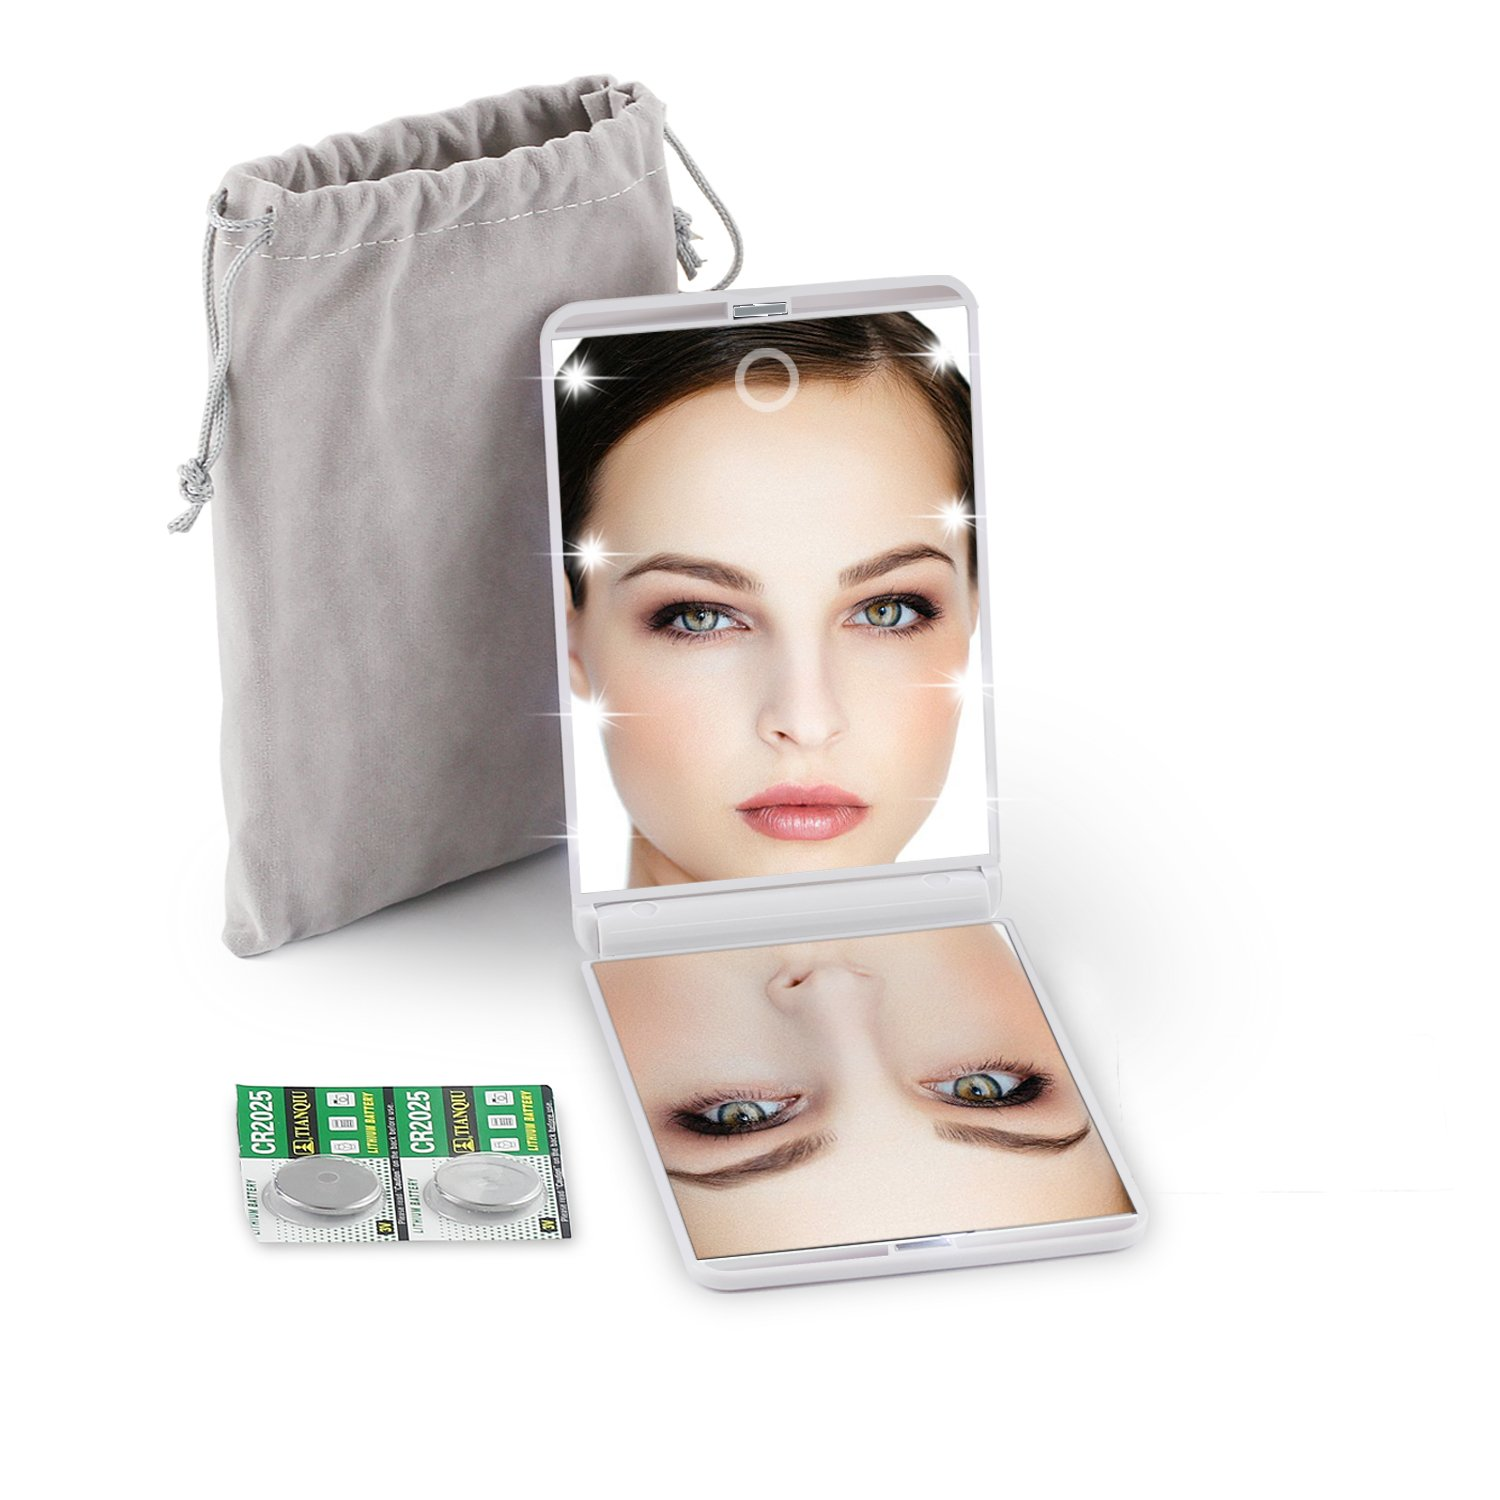 LED Lighted Travel Makeup Mirror, Handheld Illuminated Compact Mirror, Portable Folding Cosmetic Mirror with Light, Touch Dimmable, 1X & 2X Magnification, Pouch & 4 Batteries included, White Shenzhen Wobane Trading Ltd. LED compact mirror -01